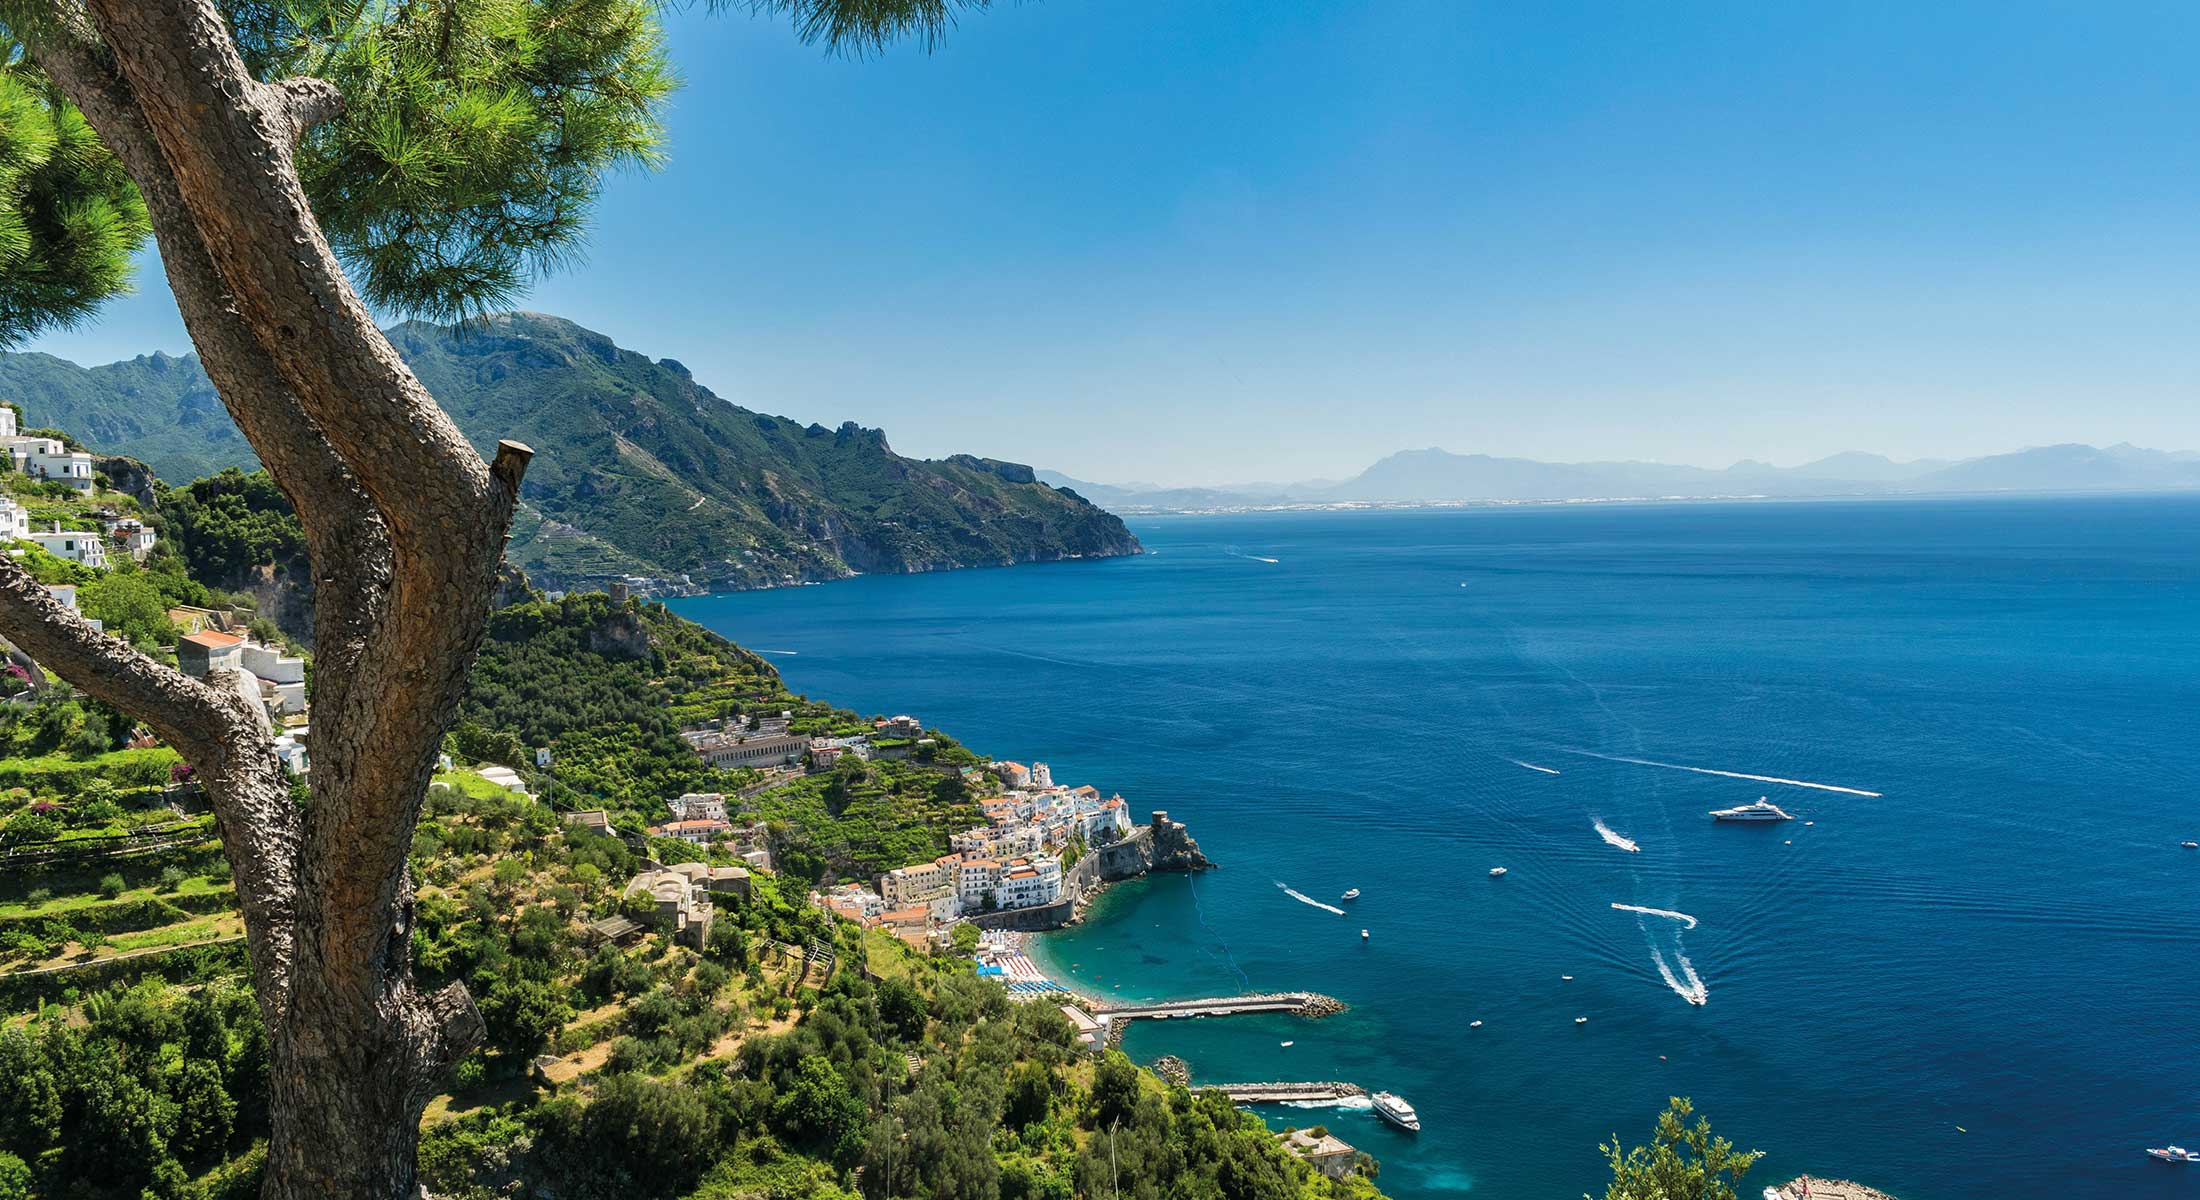 Amalfi and inland wine tour